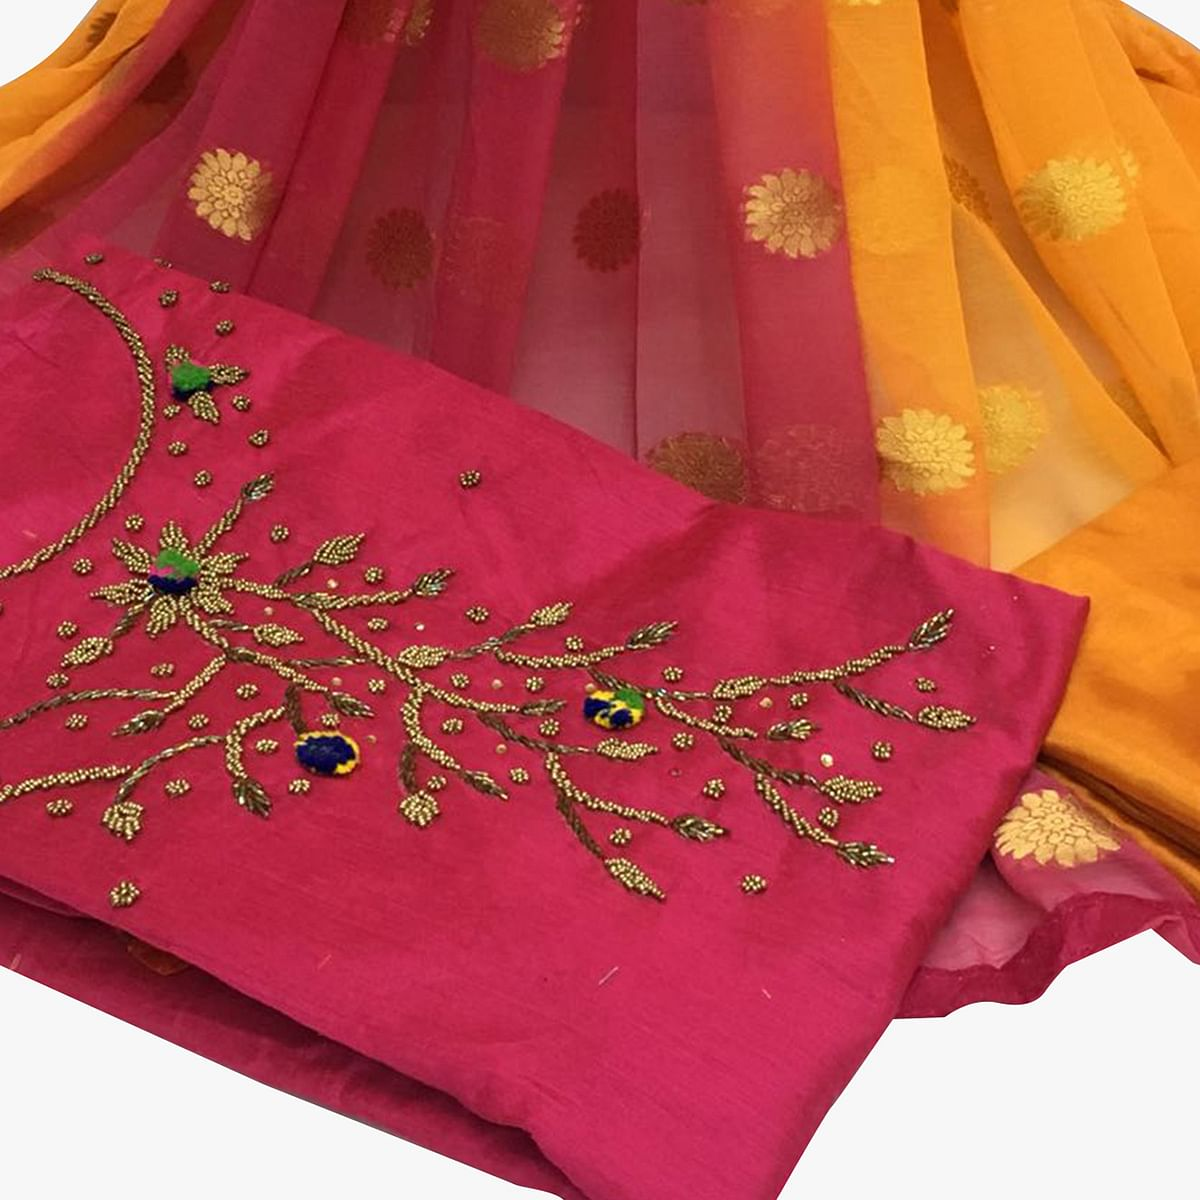 Charming Dark Pink Colored Partywear Embroidered Santoon Dress Material